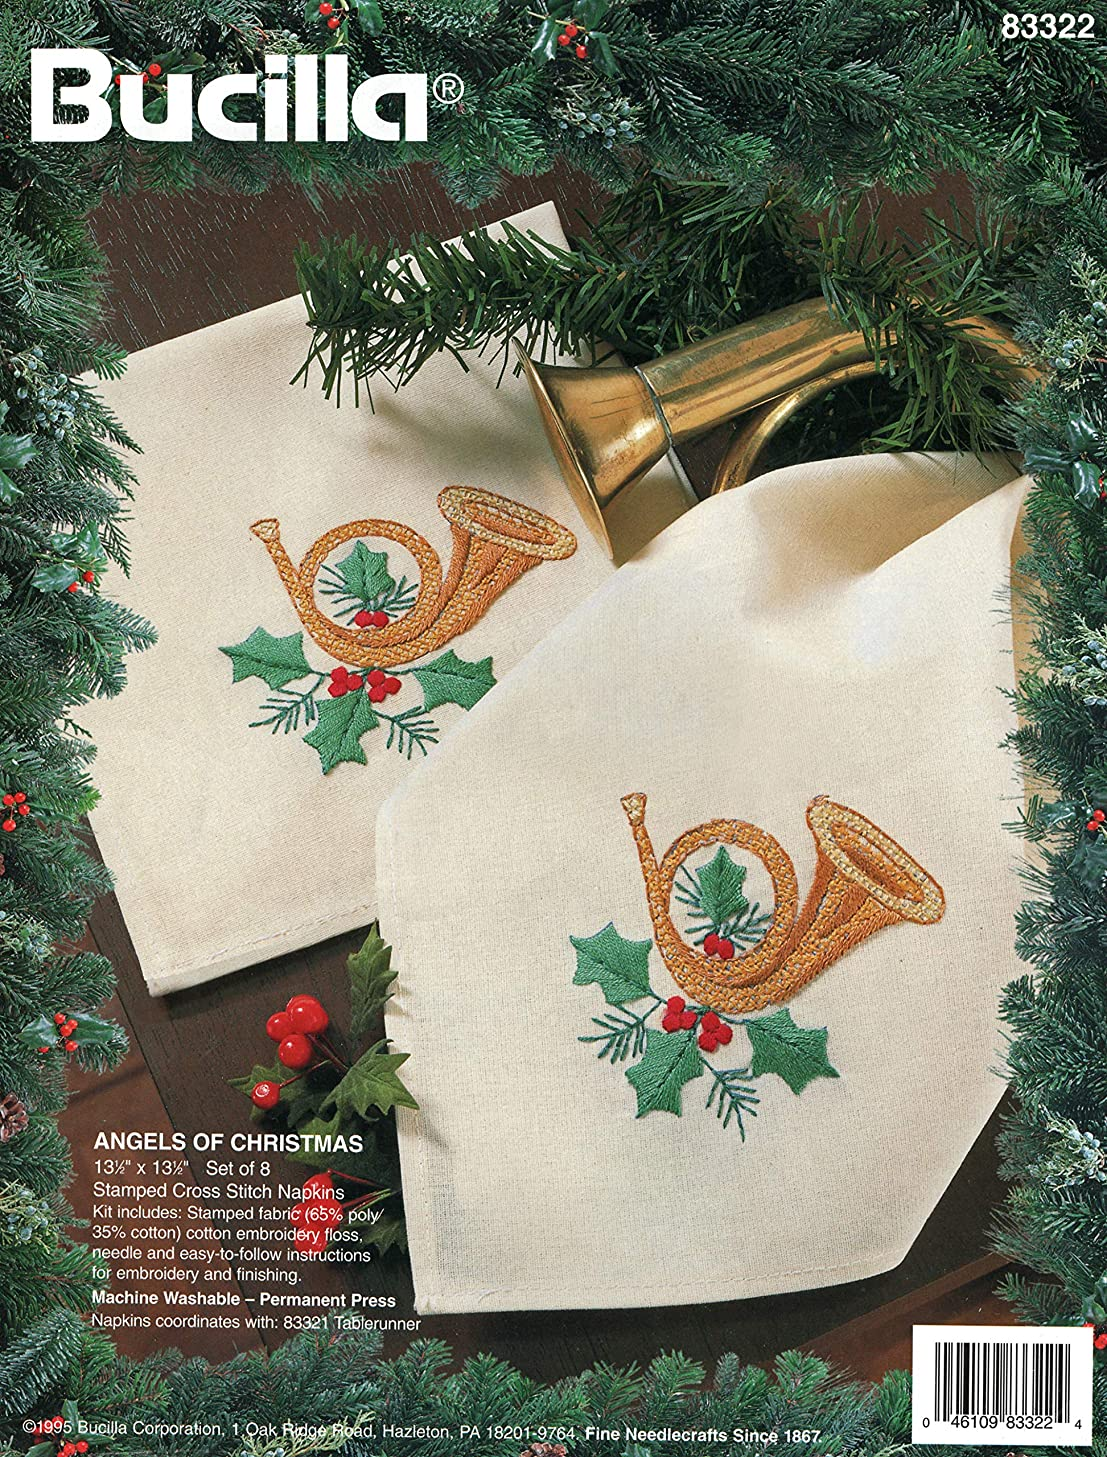 Bucilla Angels of Christmas Stamped Cross Stitch Napkins Kit